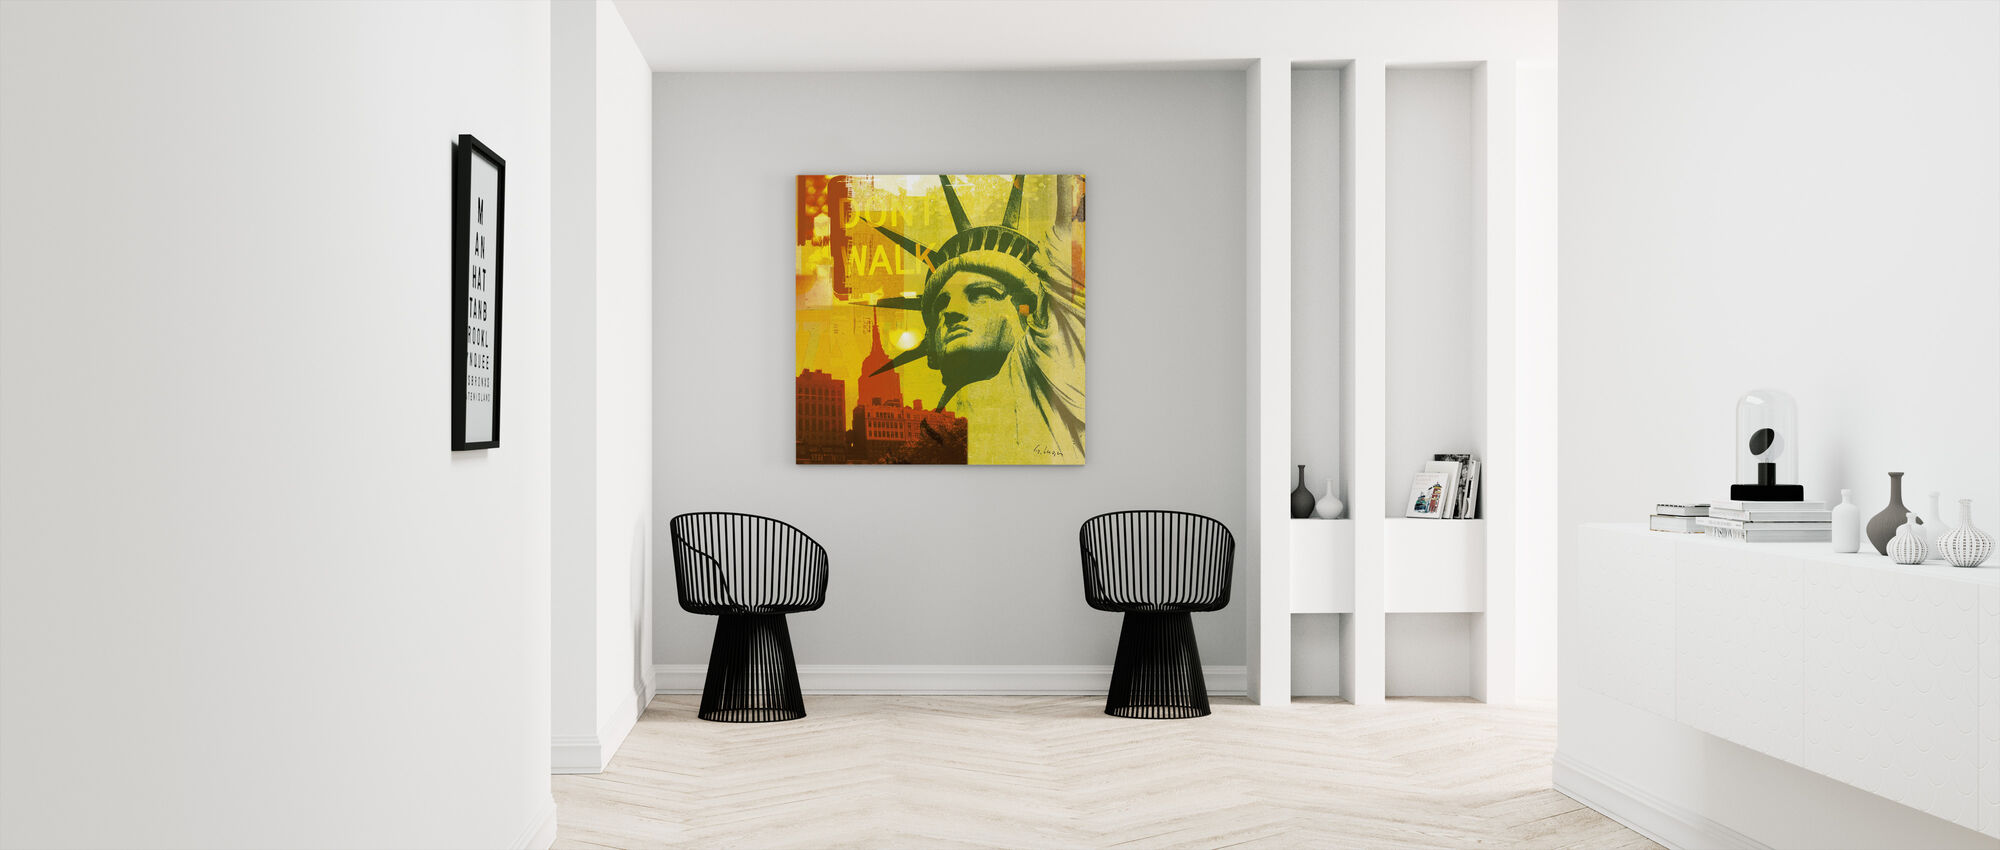 New York Dont Walk III - Canvas print - Hallway